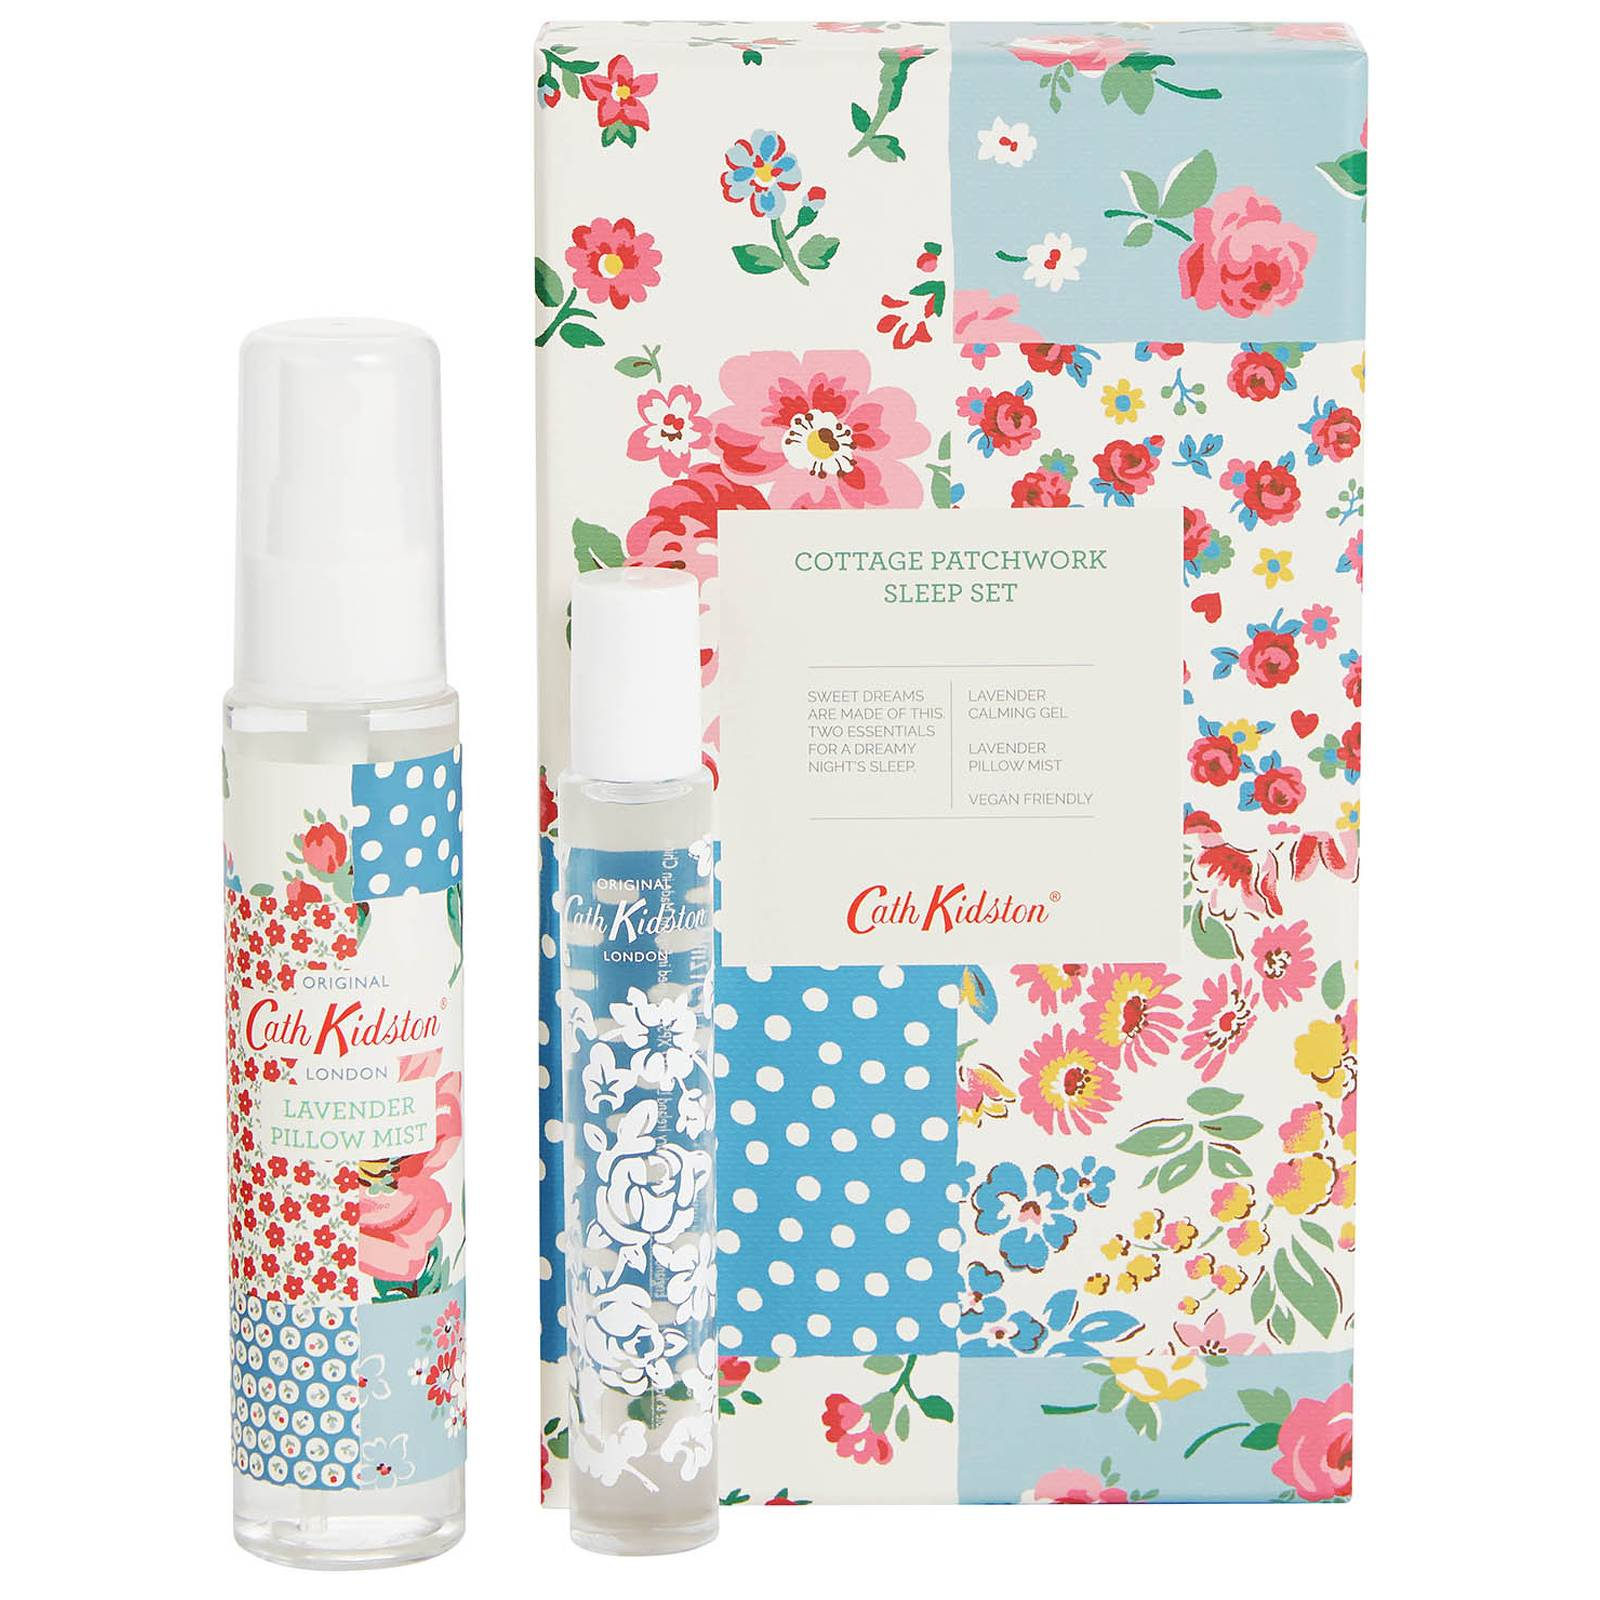 Cath Kidston - Gifts & Sets Cottage Patchwork Travel Sleep Set for Women